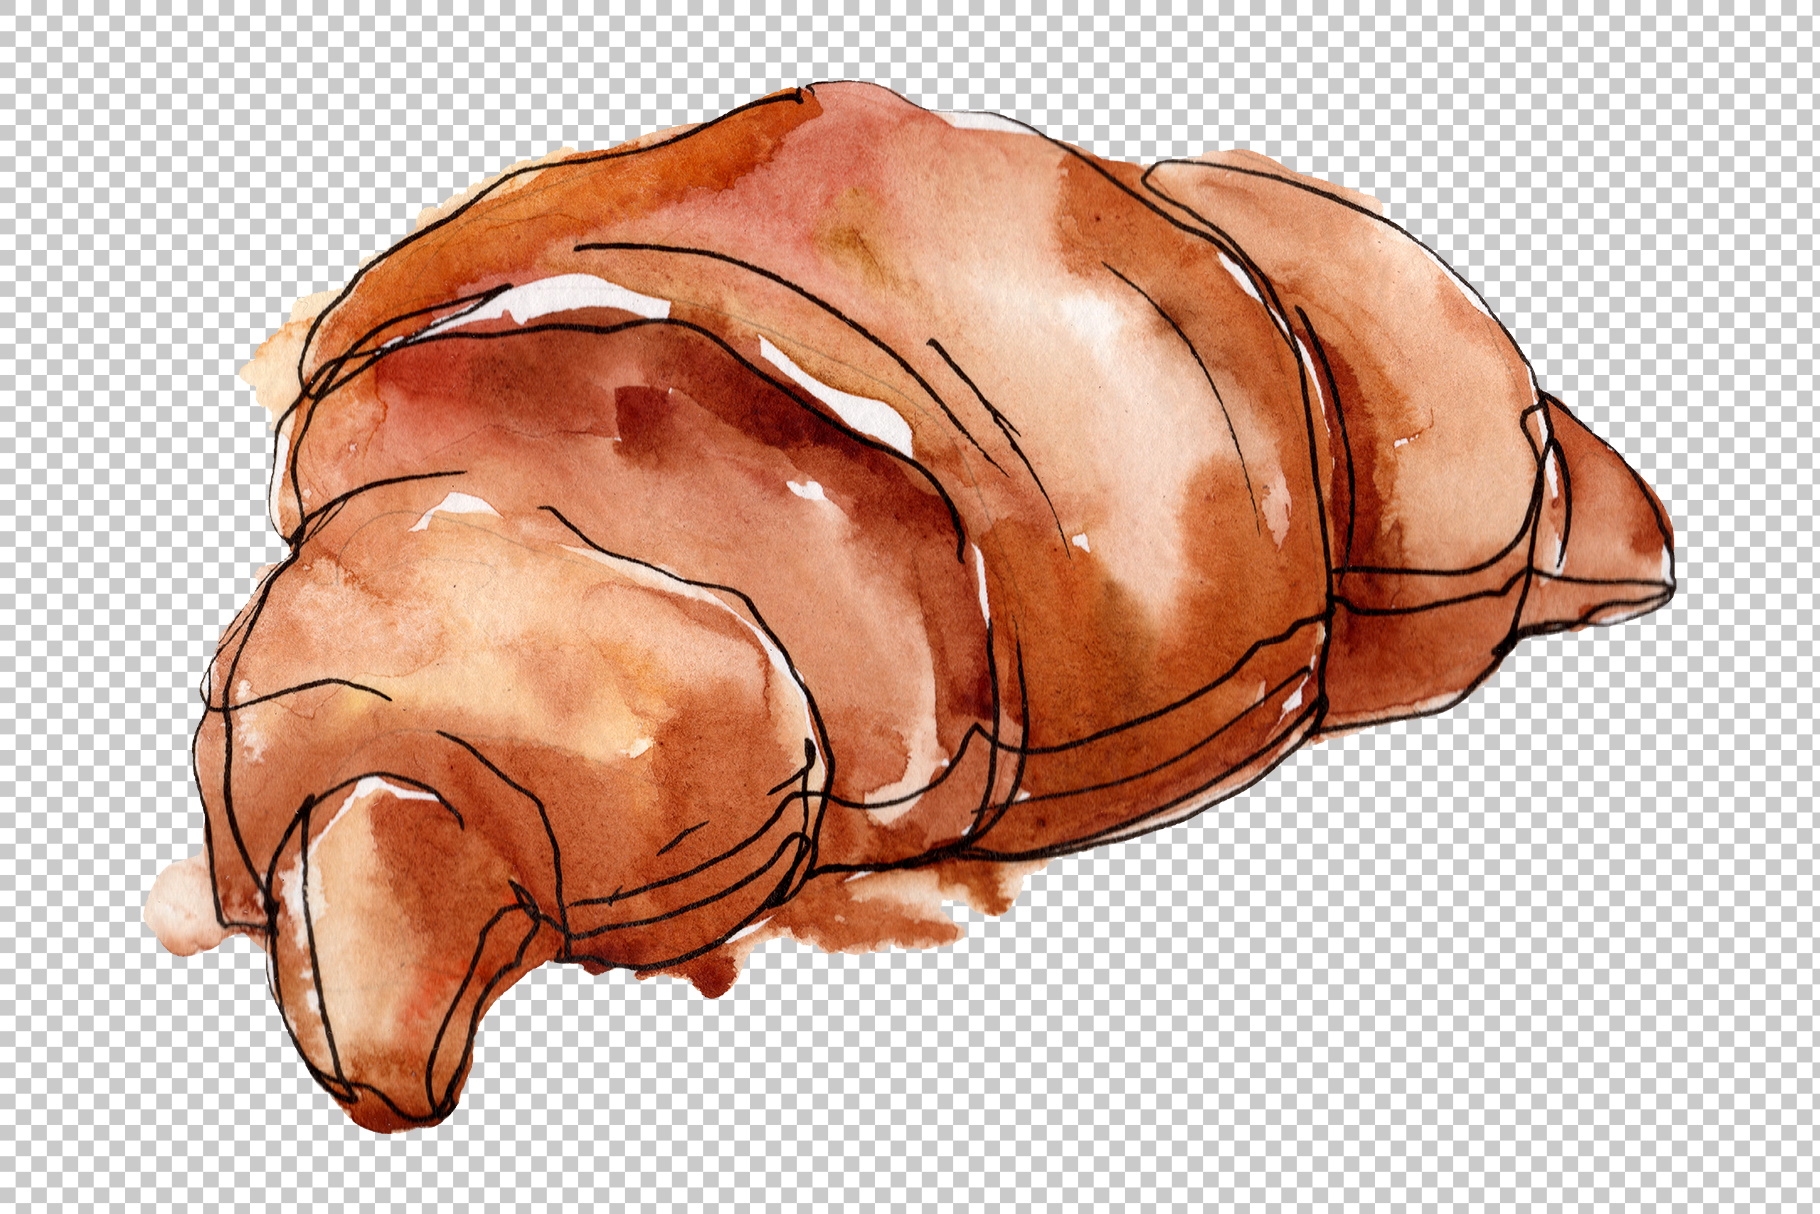 Dessert Cake with Chocolate and Croissant Watercolor png example image 3